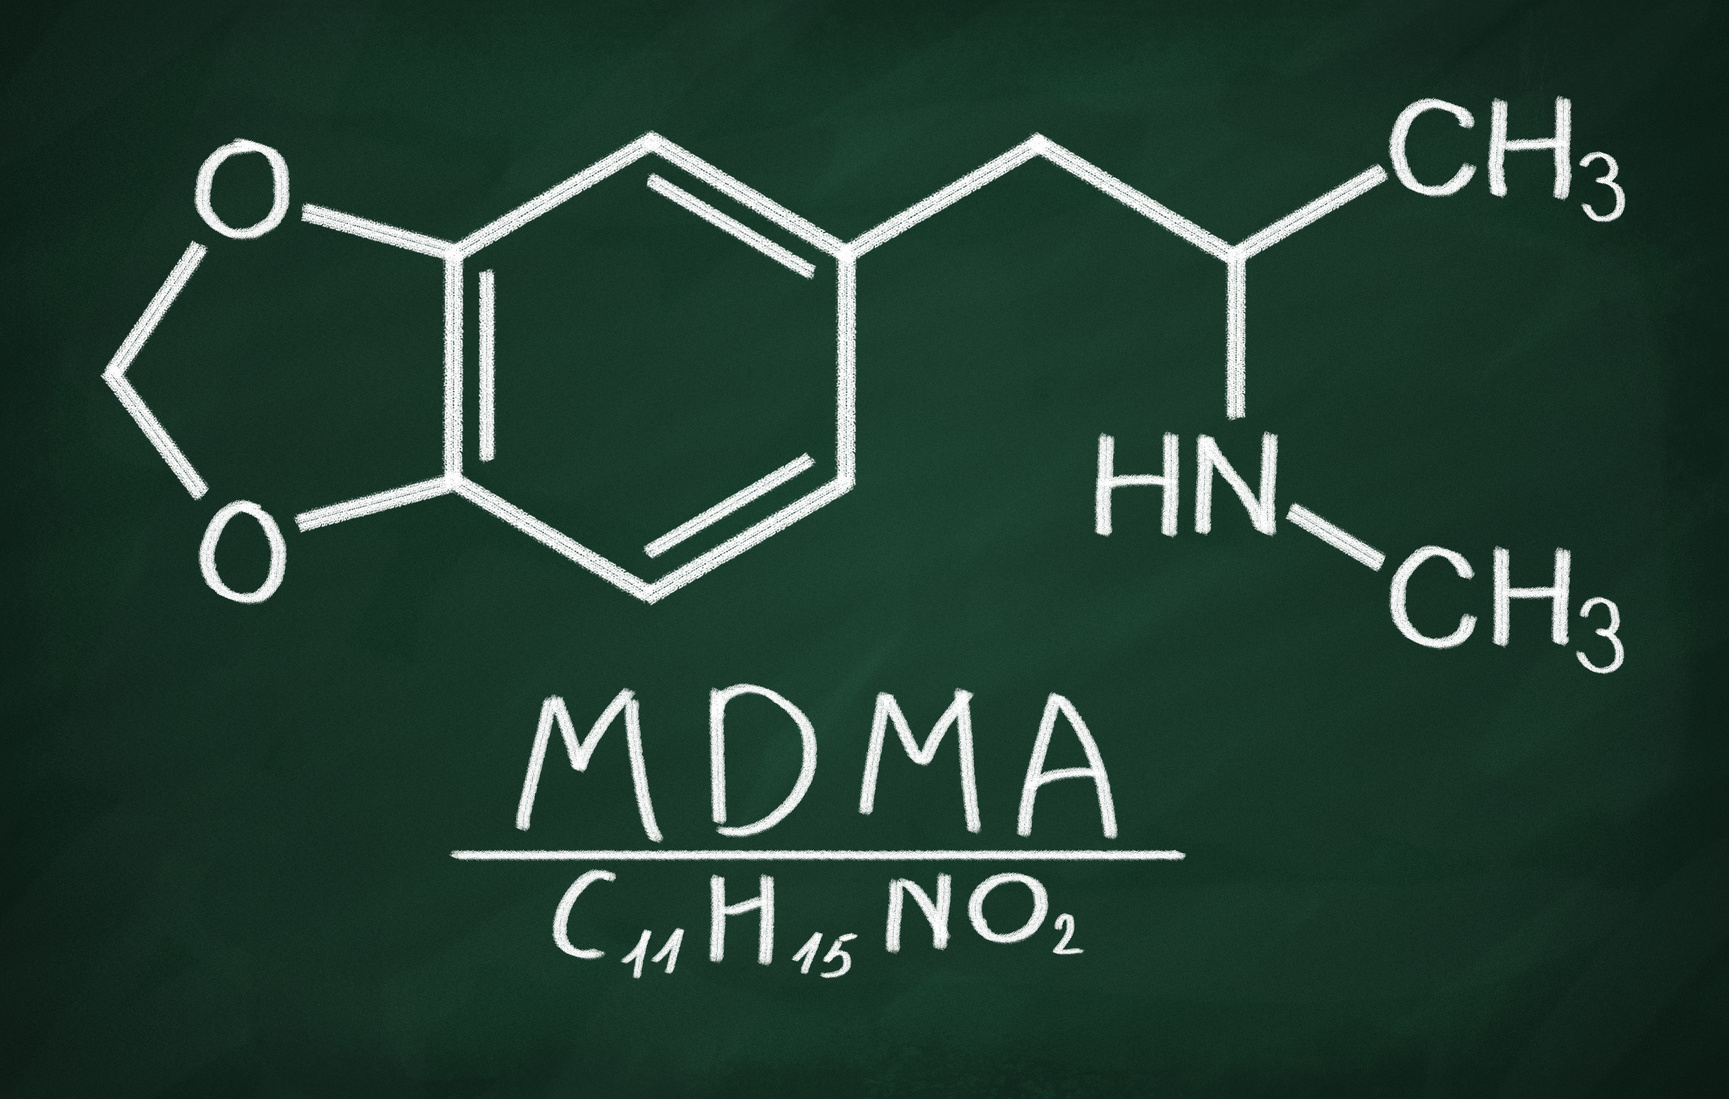 MDMA-assisted psychotherapy helps reduce alcohol relapse